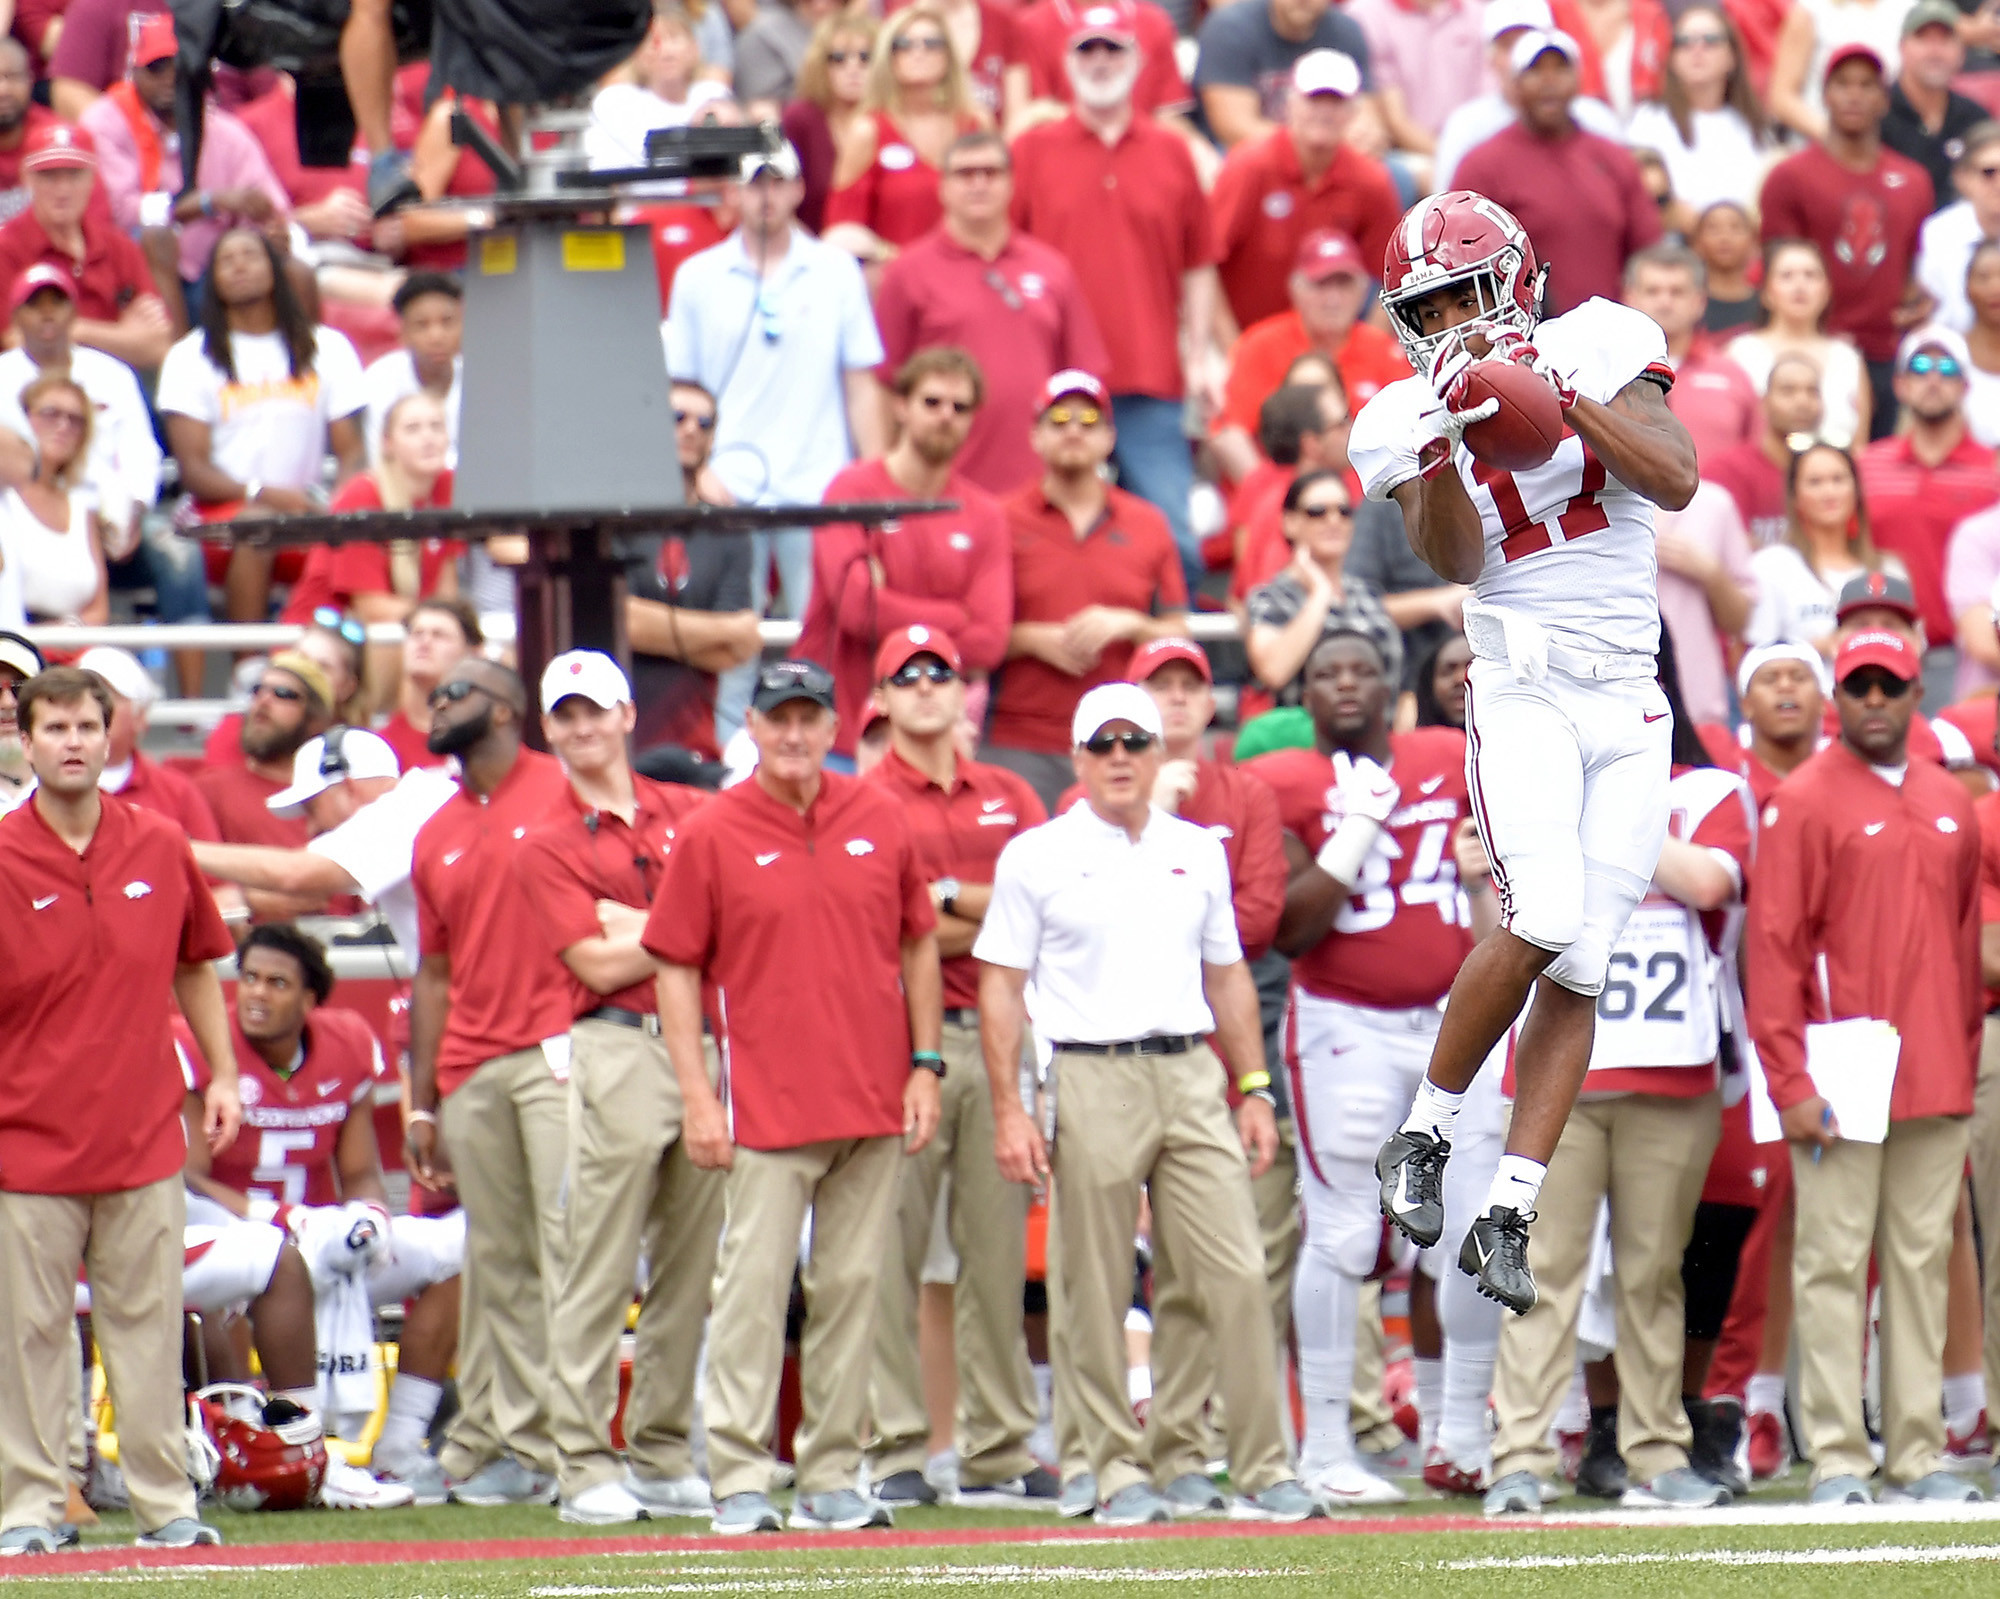 Alabama Crimson Tide wide receiver Jaylen Waddle (17) with the mid-air catch in the first half of the NCAA football game at Razorback Stadium on Oct. 6, 2018, in Fayetteville, Ark. Alabama defeated Arkansas 65-31. (Photo by Lee Walls)